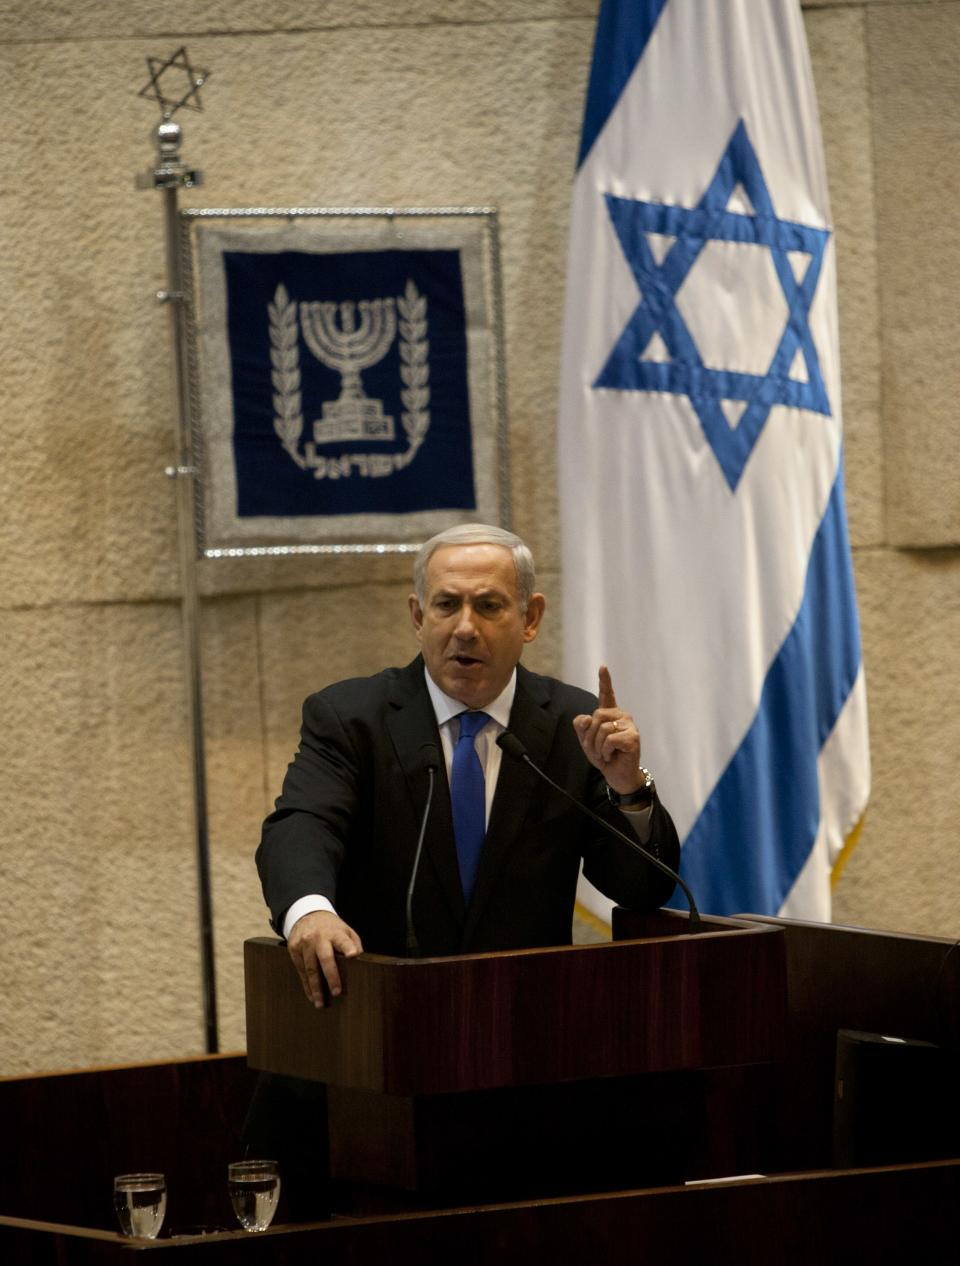 Israeli Prime Minister Benjamin Netanyahu gestures as he delivers a speech at the Knesset, Israel's parliament in Jerusalem, Monday, Oct. 15, 2012.  Israel's parliament has gathered for a vote to dissolve itself and hold early parliamentary elections. (AP Photo/Sebastian Scheiner)